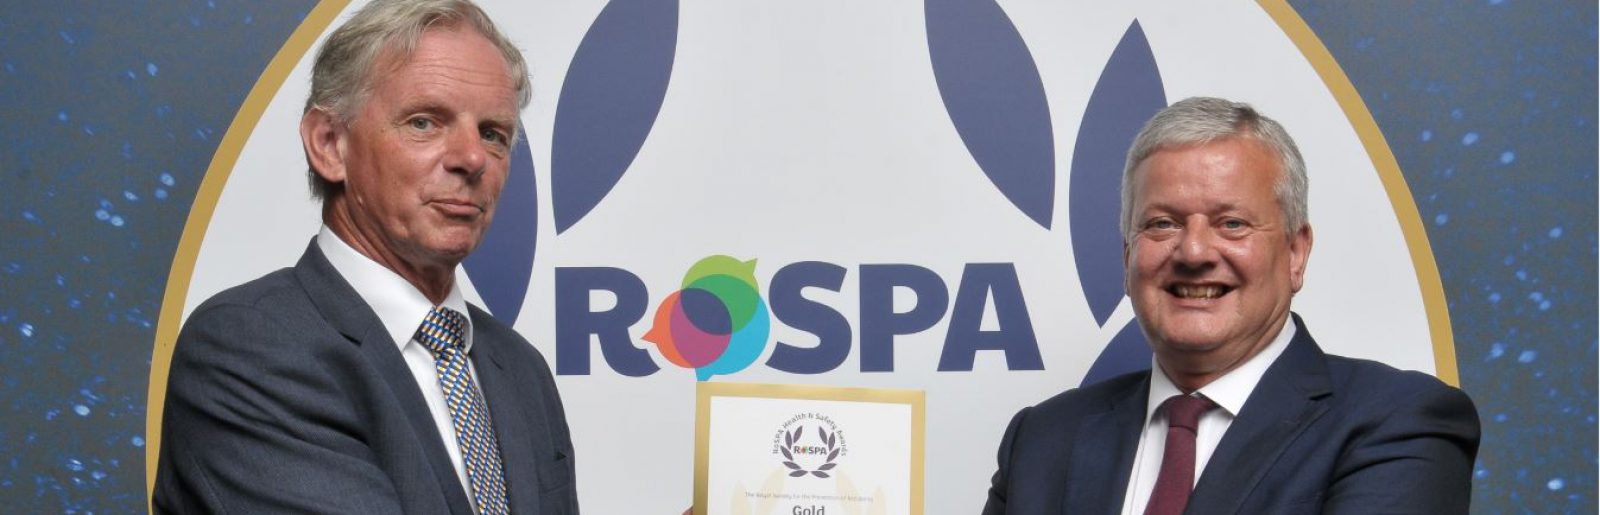 Awarded RoSPA <br /> Gold in Fleet Safety - Clancy Docwra